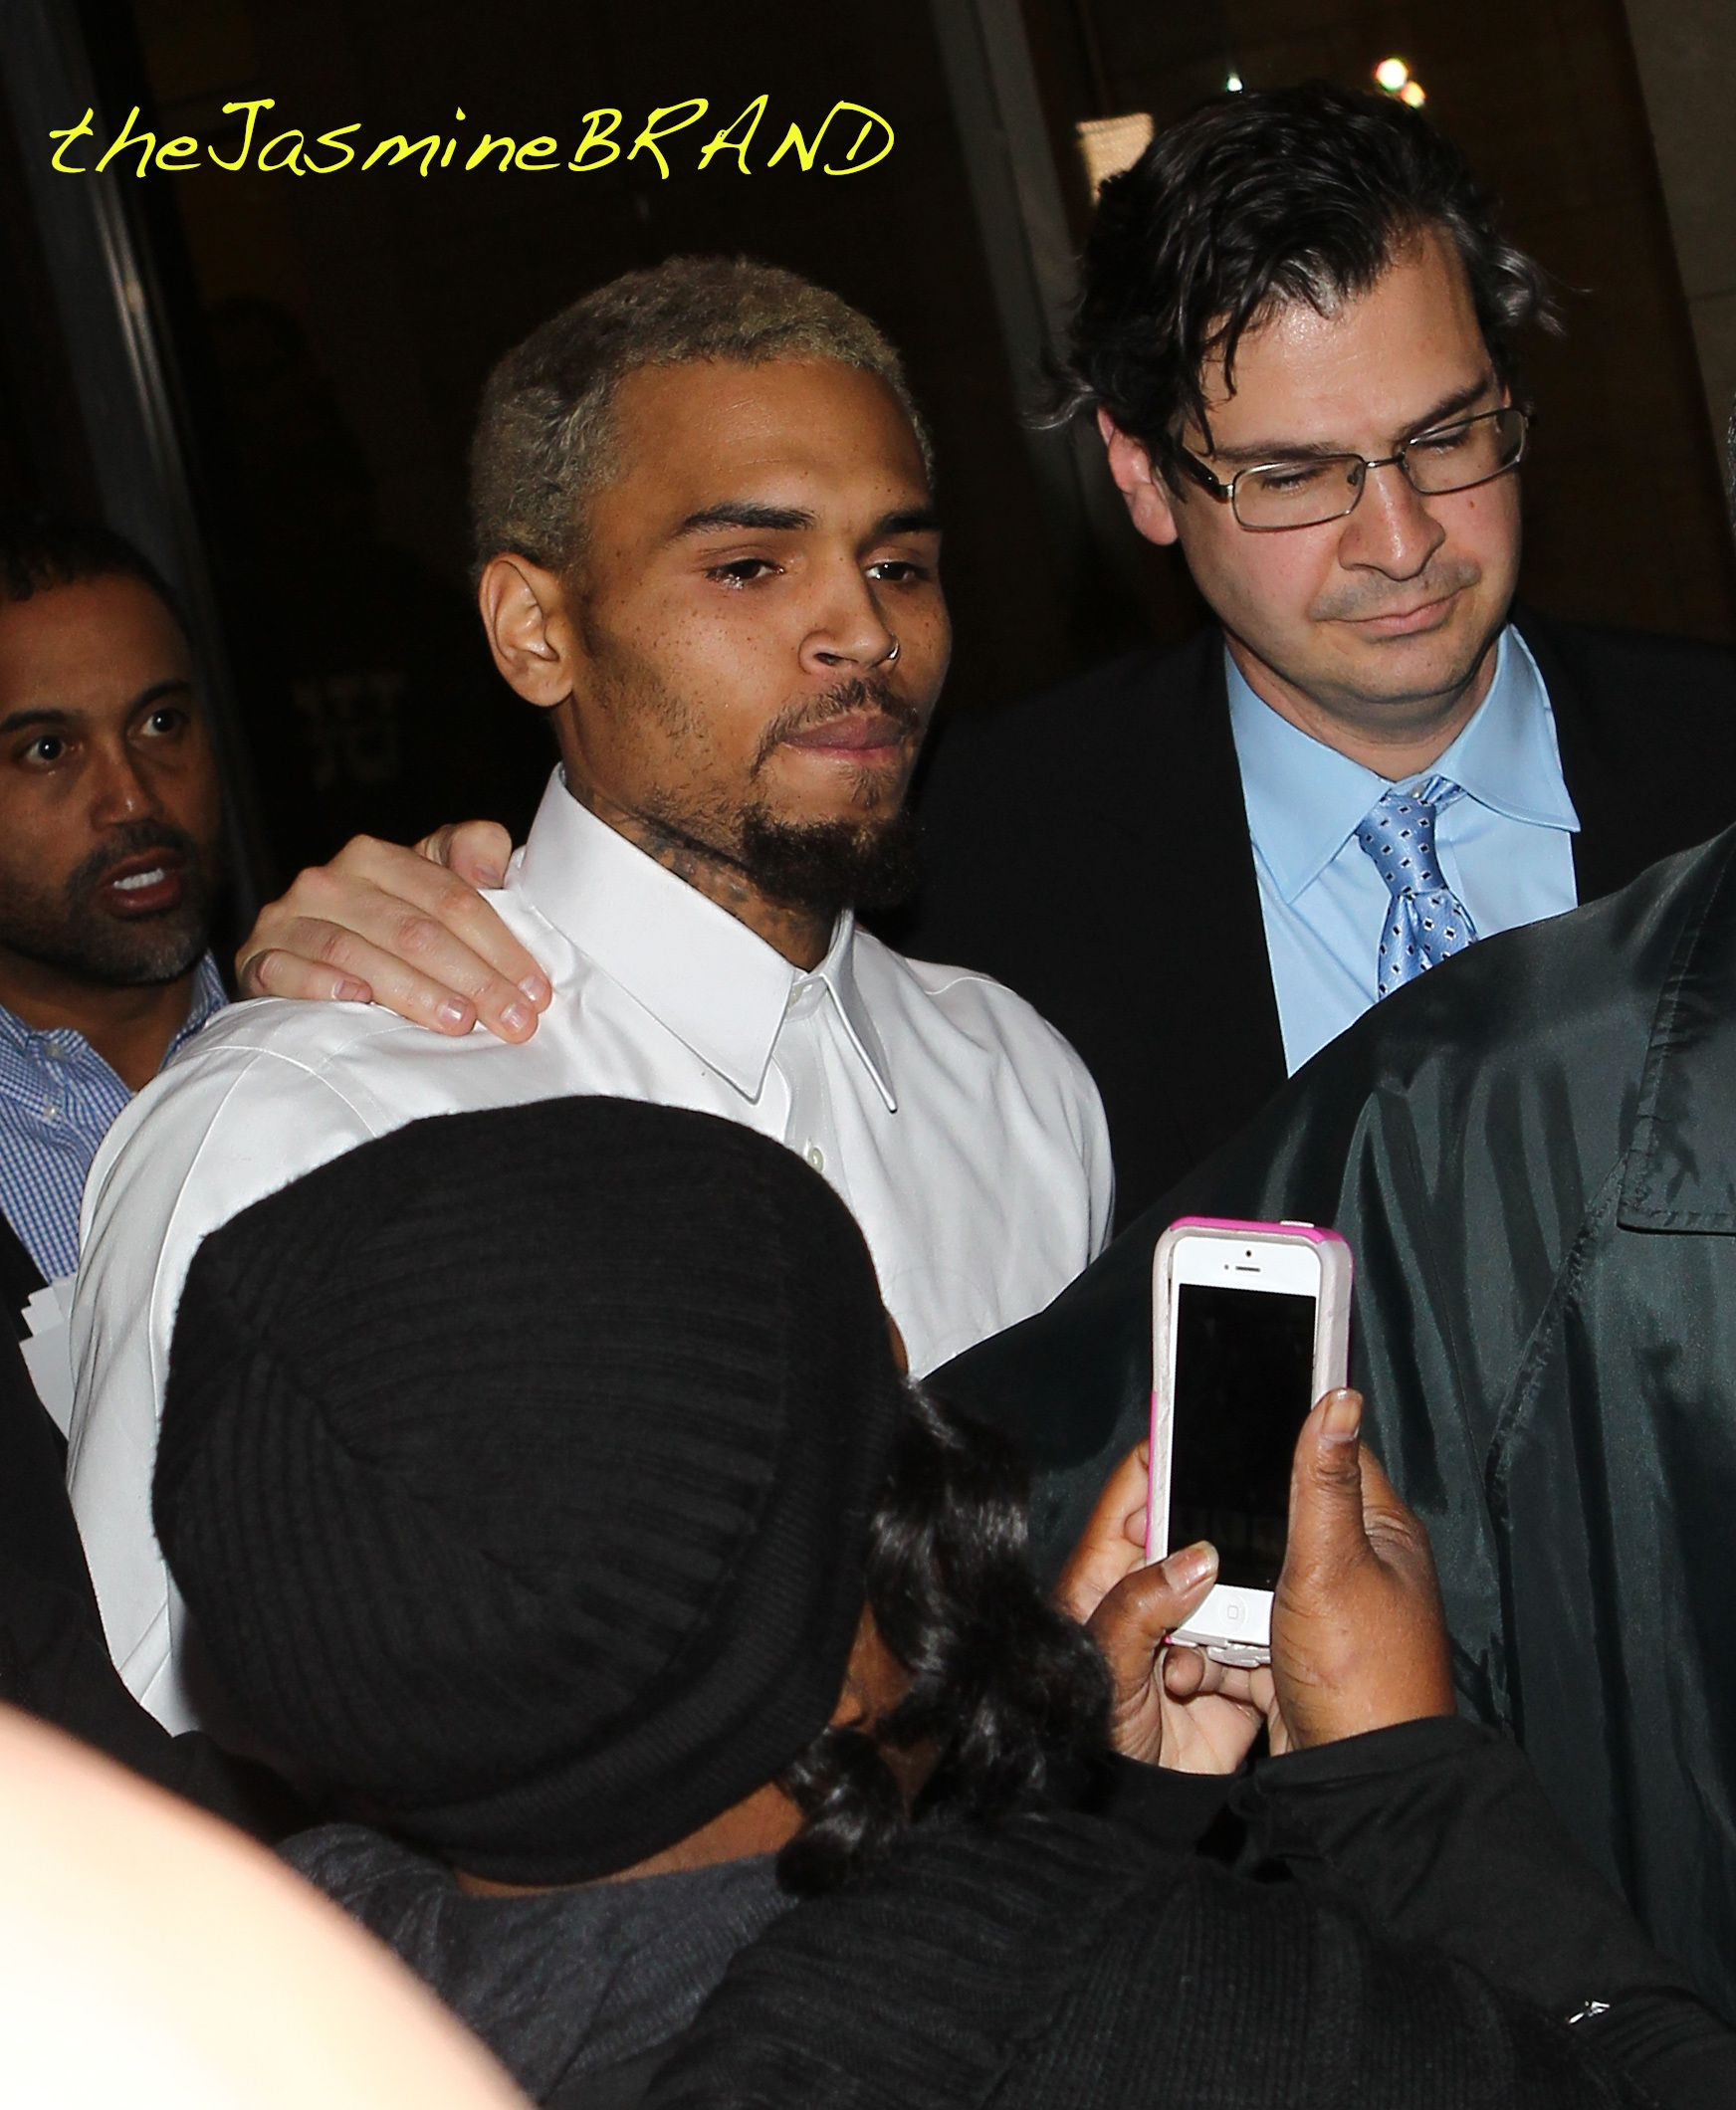 Chris Brown leaves DC courthouse